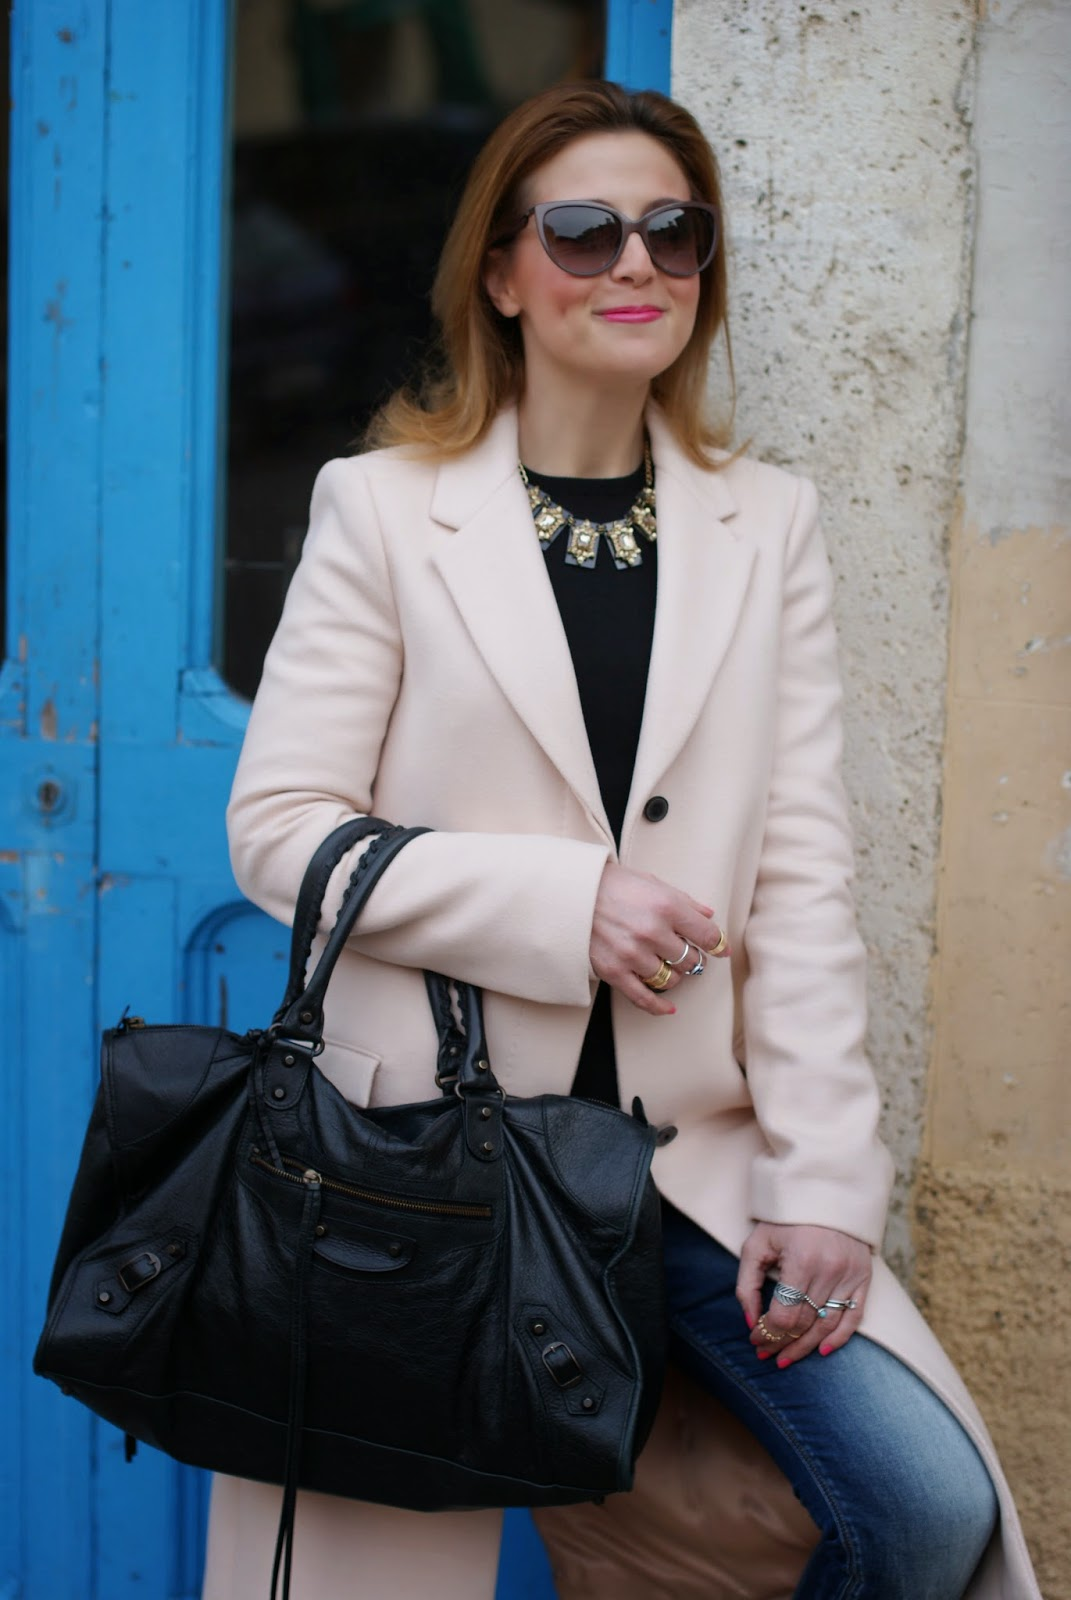 Balenciaga work bag, Zara pink coat, Moschino sunglasses, Fashion and Cookies, fashion blogger